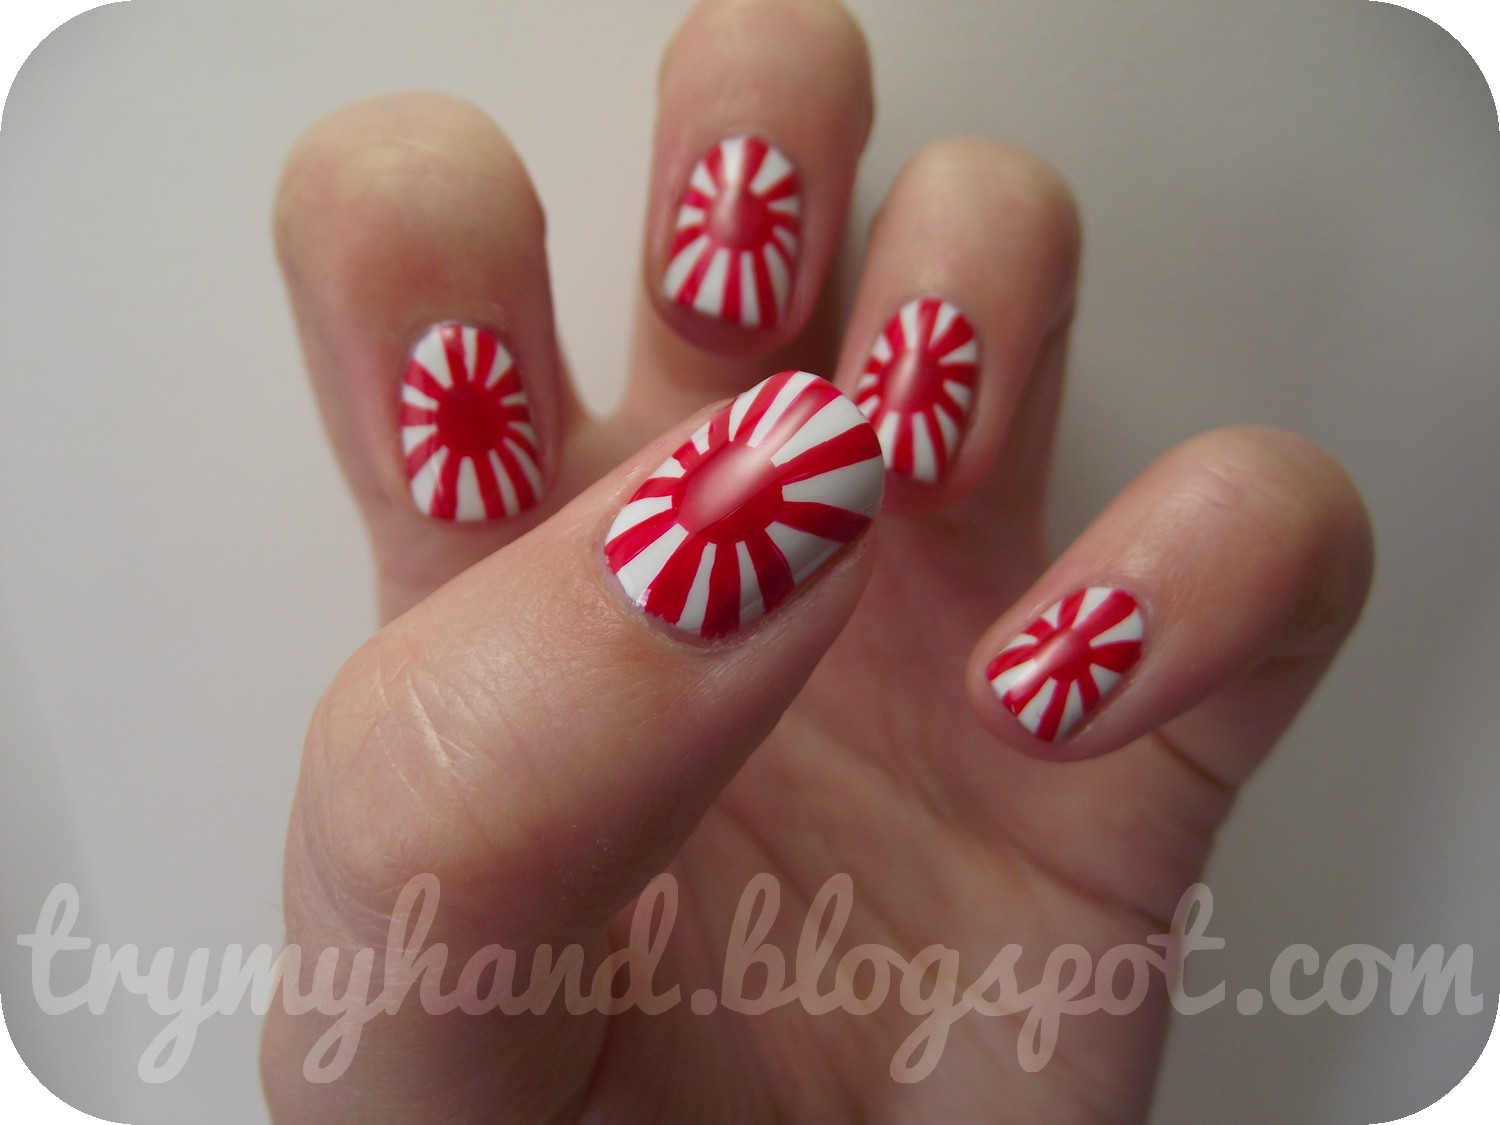 Nail Art Ideas sun nail art : Try My Hand: Alphabet Nail Art Challenge : J for Japanese